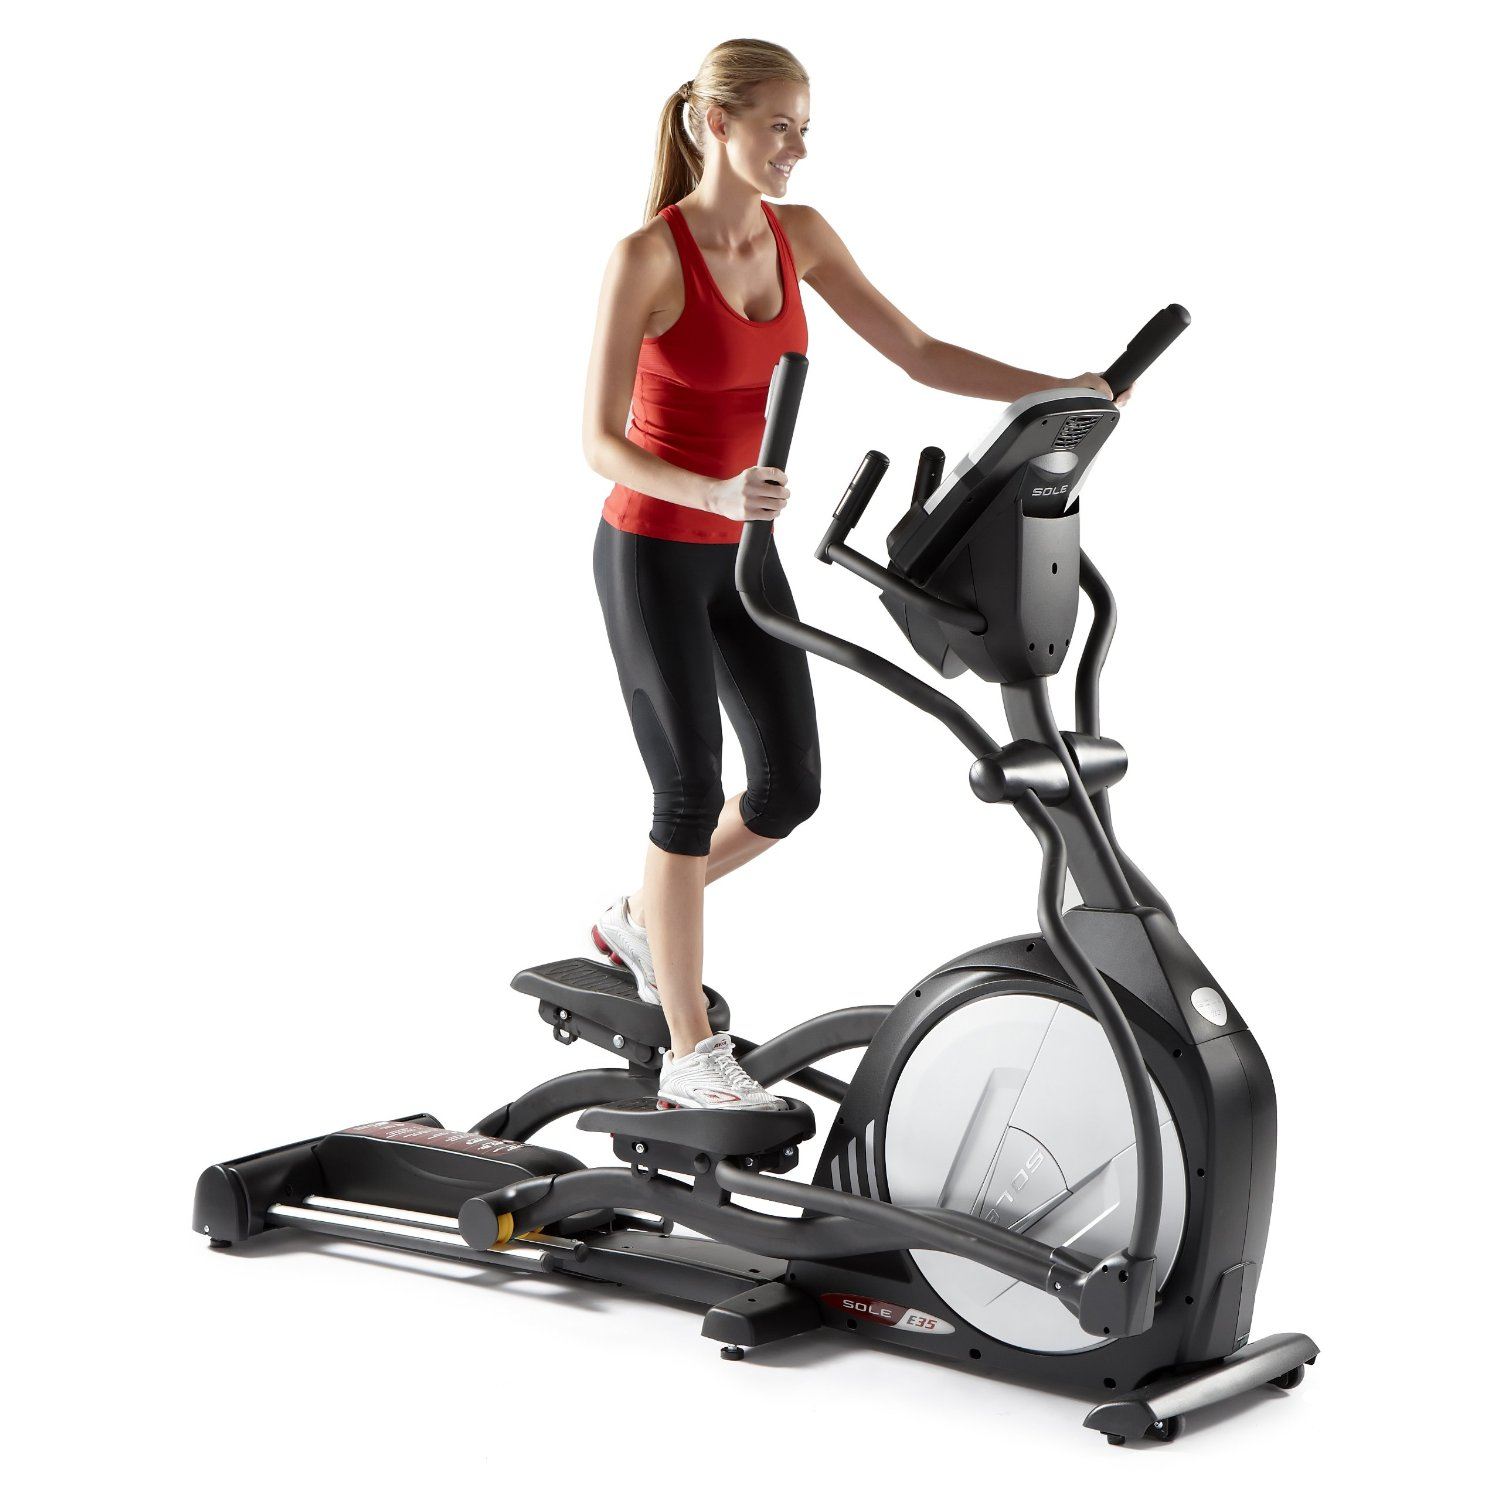 Top Tips To Keep Your Elliptical Machine In Tip Top Shape